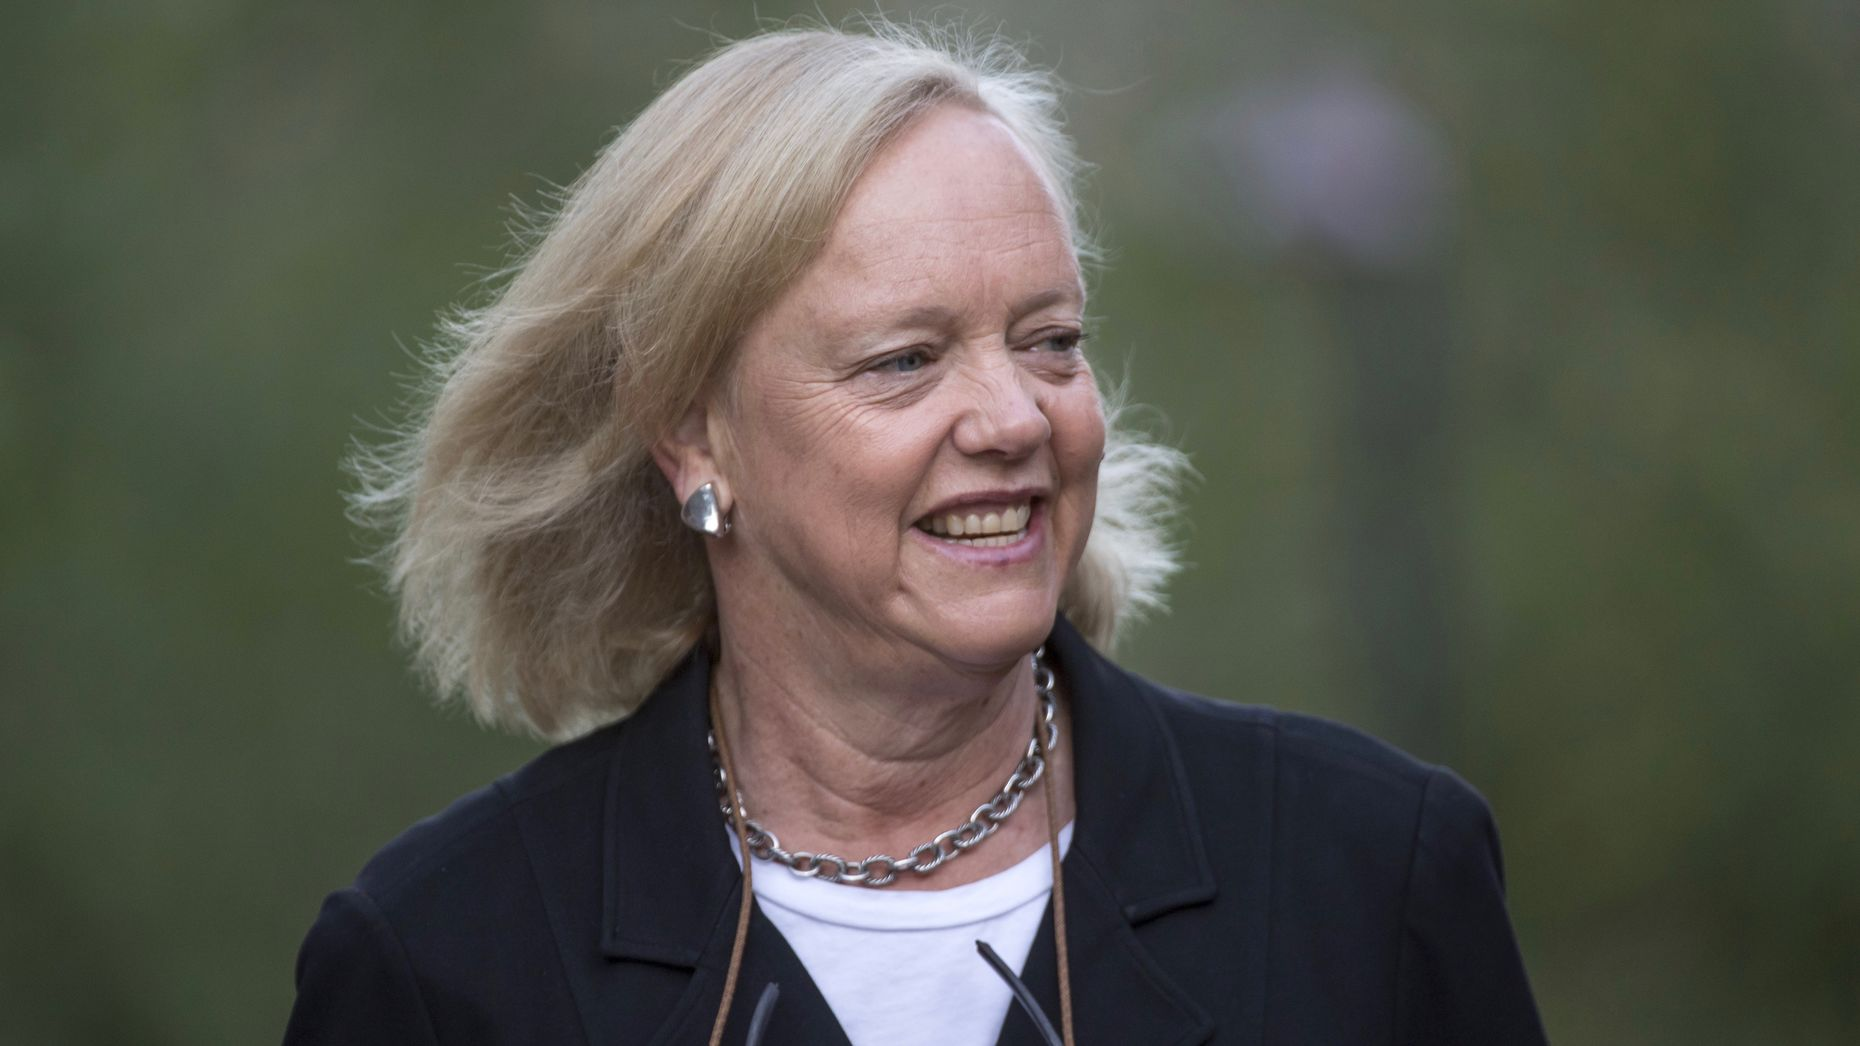 Meg Whitman. Photo by Bloomberg.